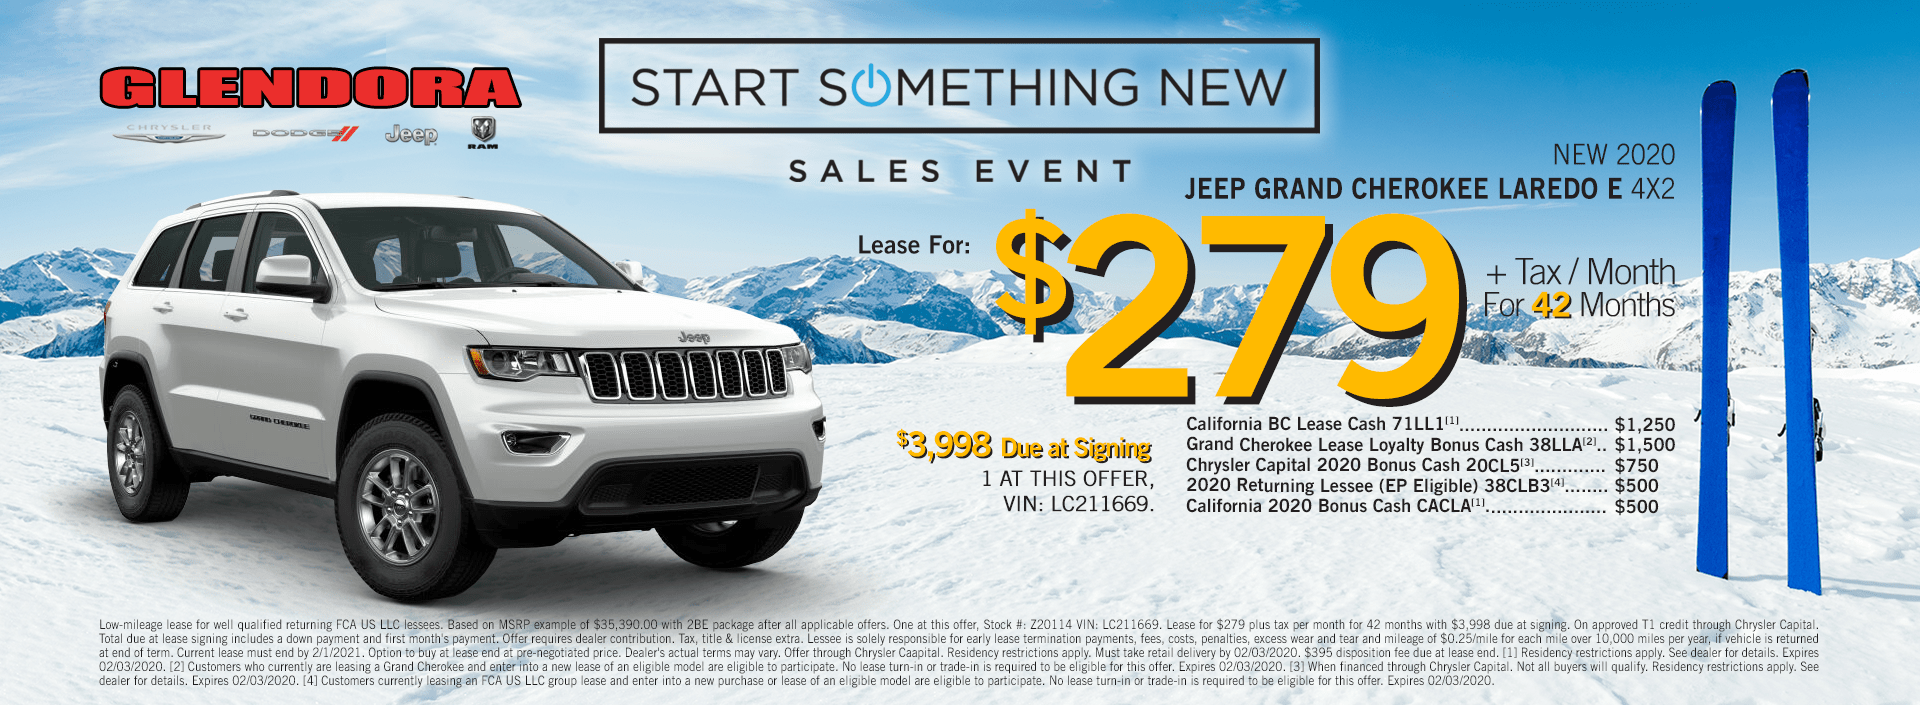 Grand Cherokee Lease Inventory